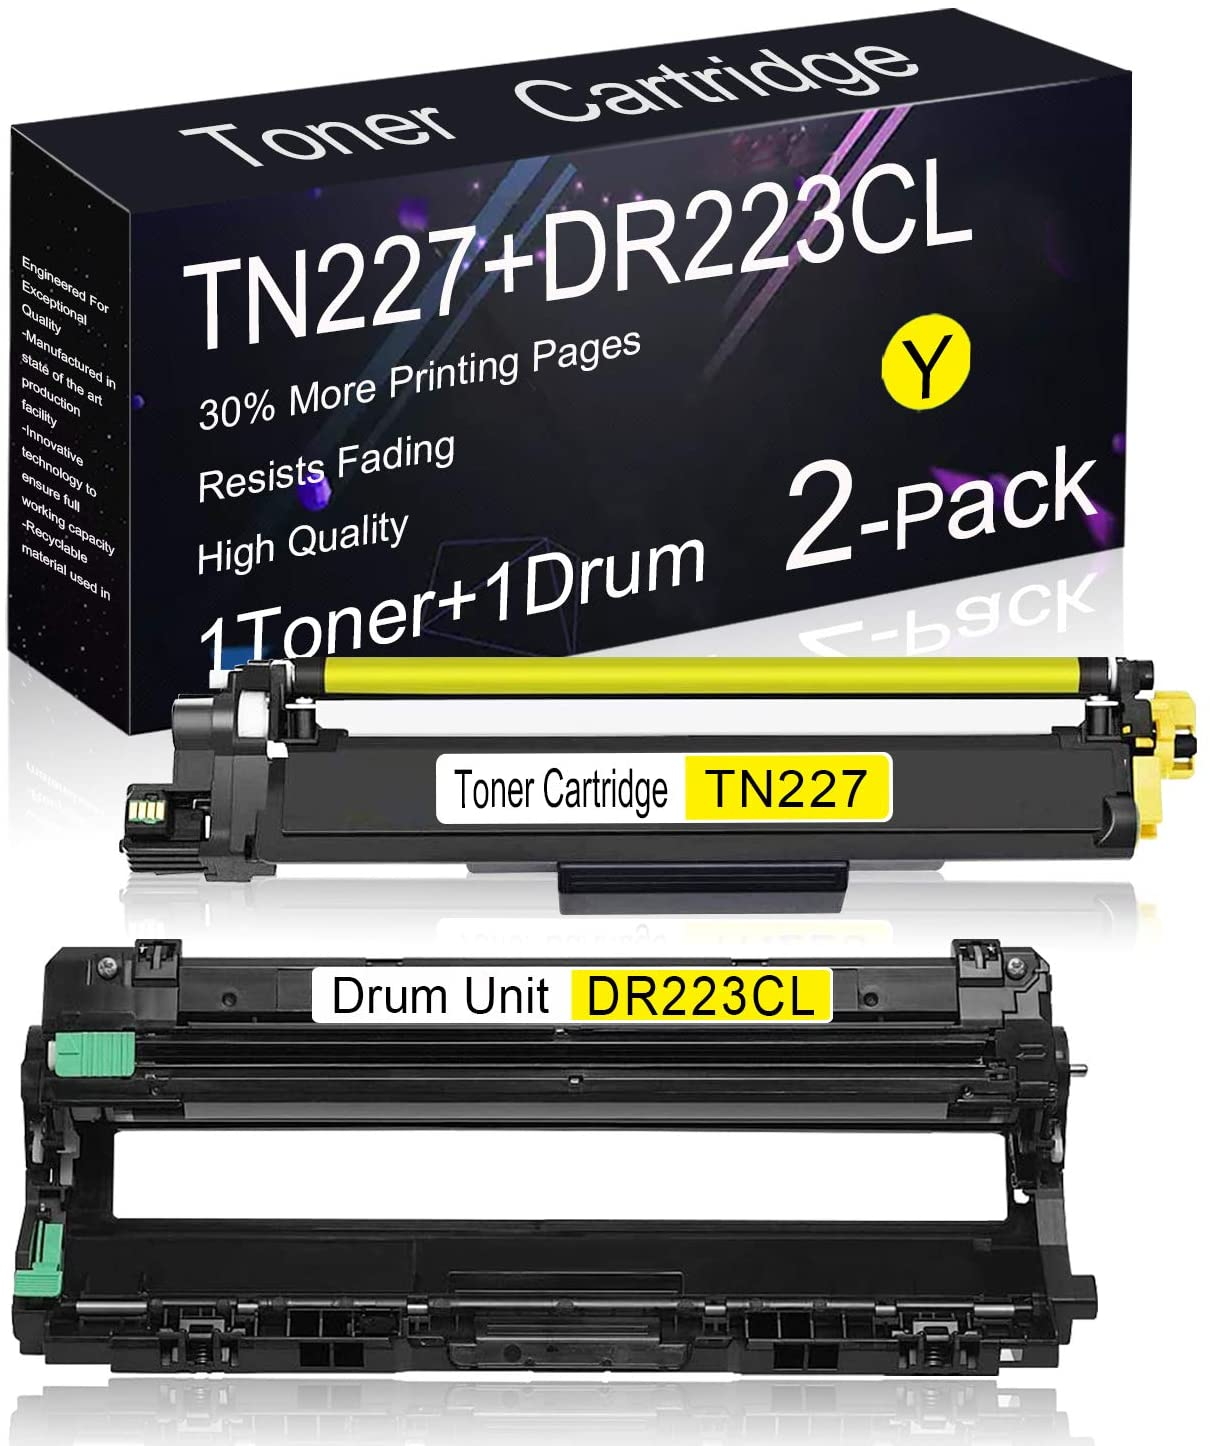 Compatible Toner/Drum Cartridge 2 Pack (1 Pack TN227 Toner + 1 Pack DR223CL Drum) Replacement for Brother DCP-L3550CDW, HL-3290CDW, HL-3230CDN, HL-3270CDW, HL-3210CW, MFC-L3710CW Printers.